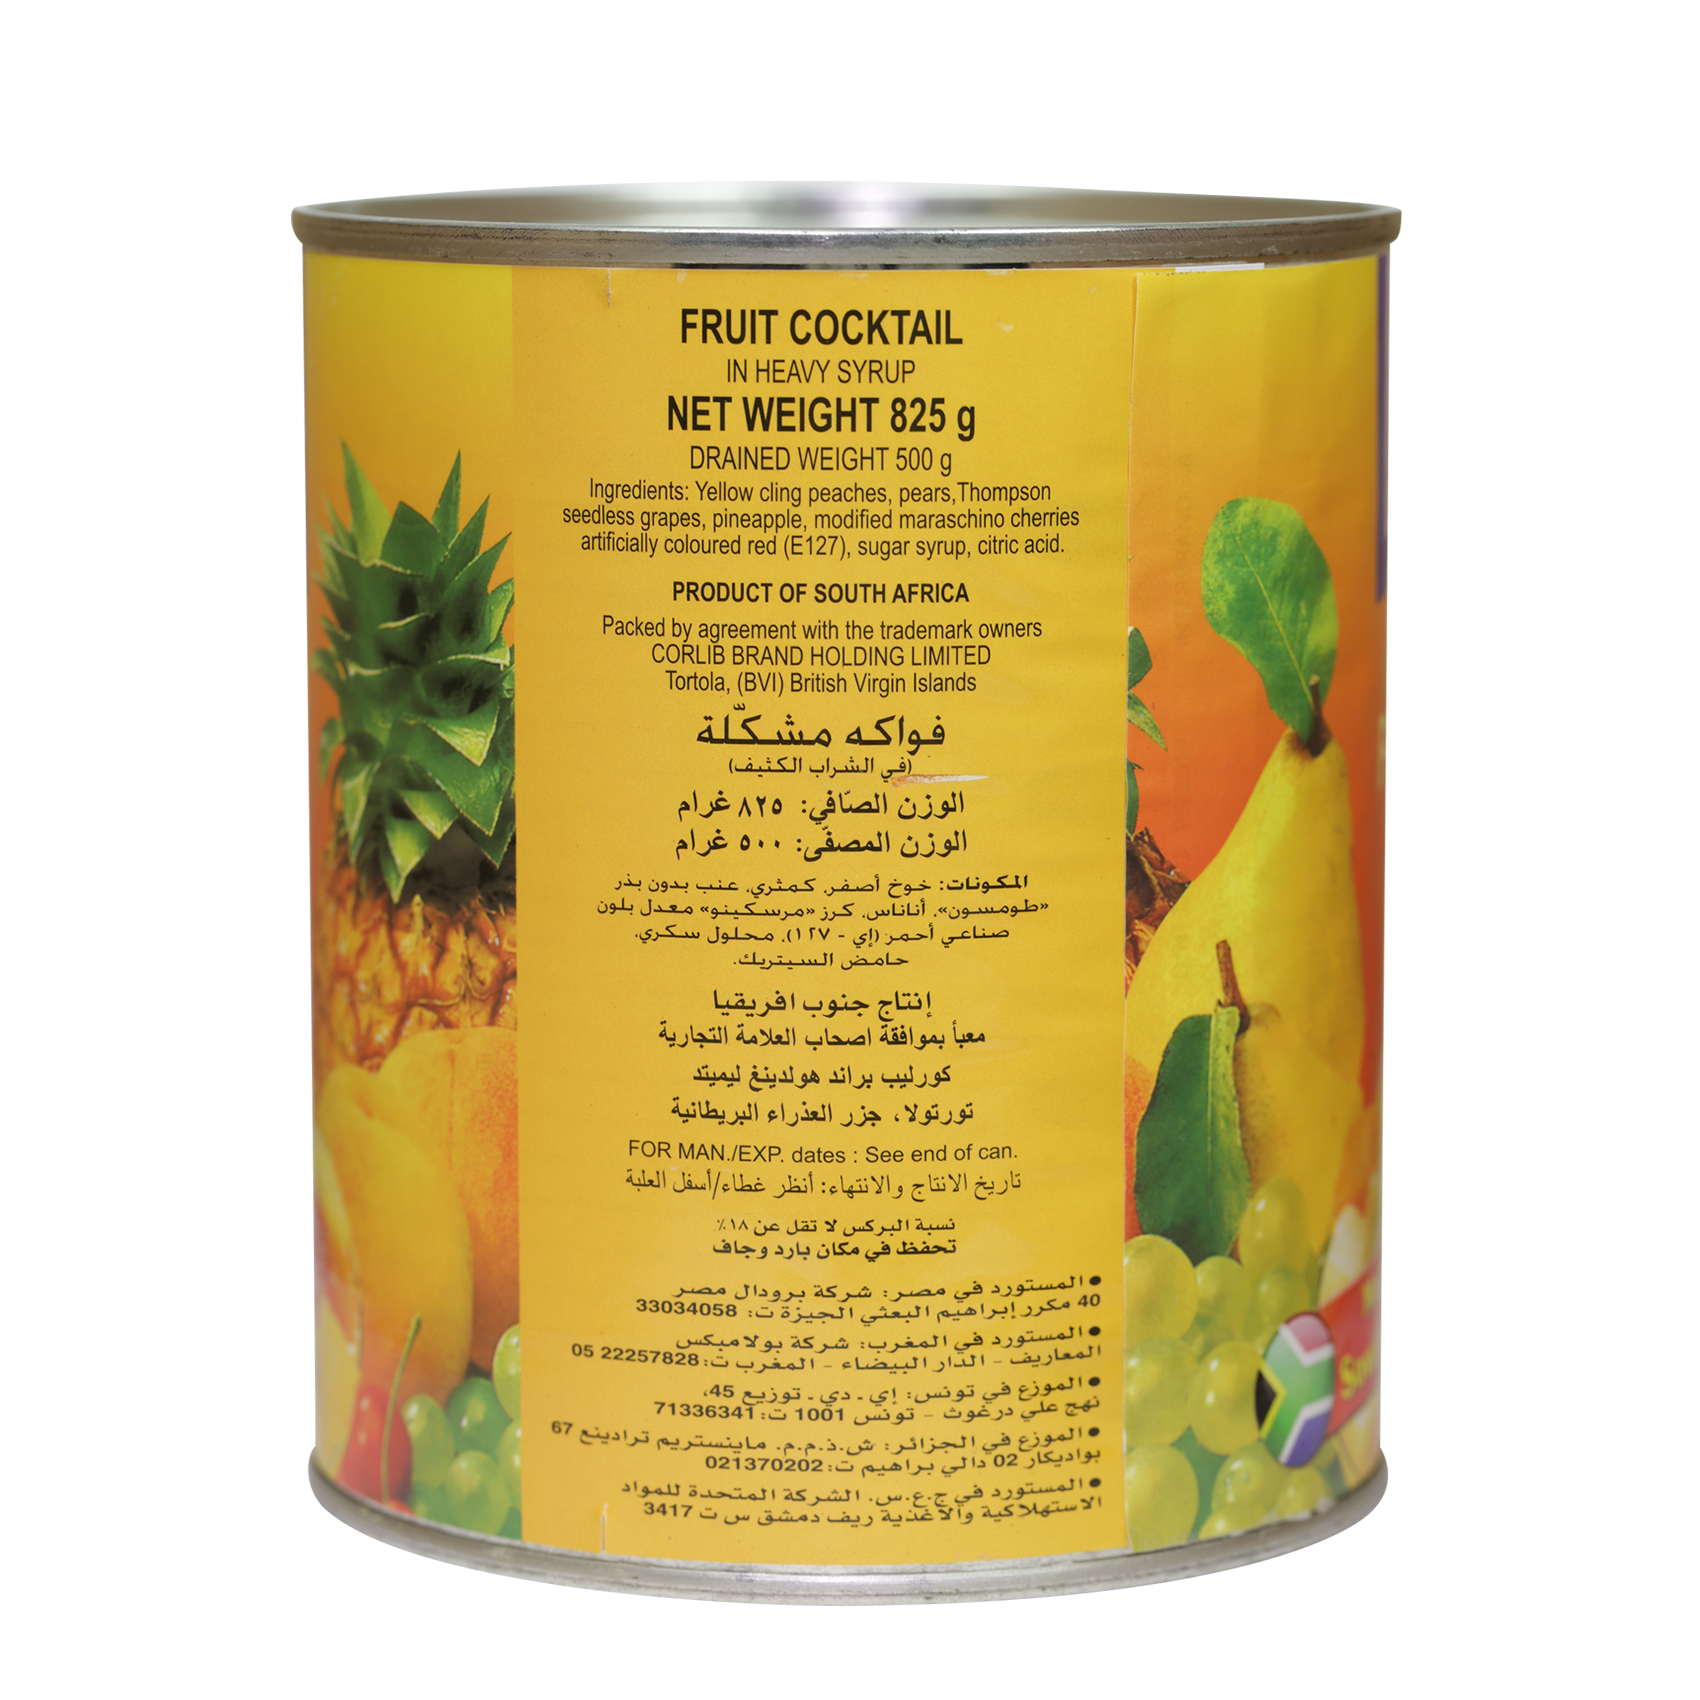 LIBBYS FRUIT COCKTAIL CAN 825G